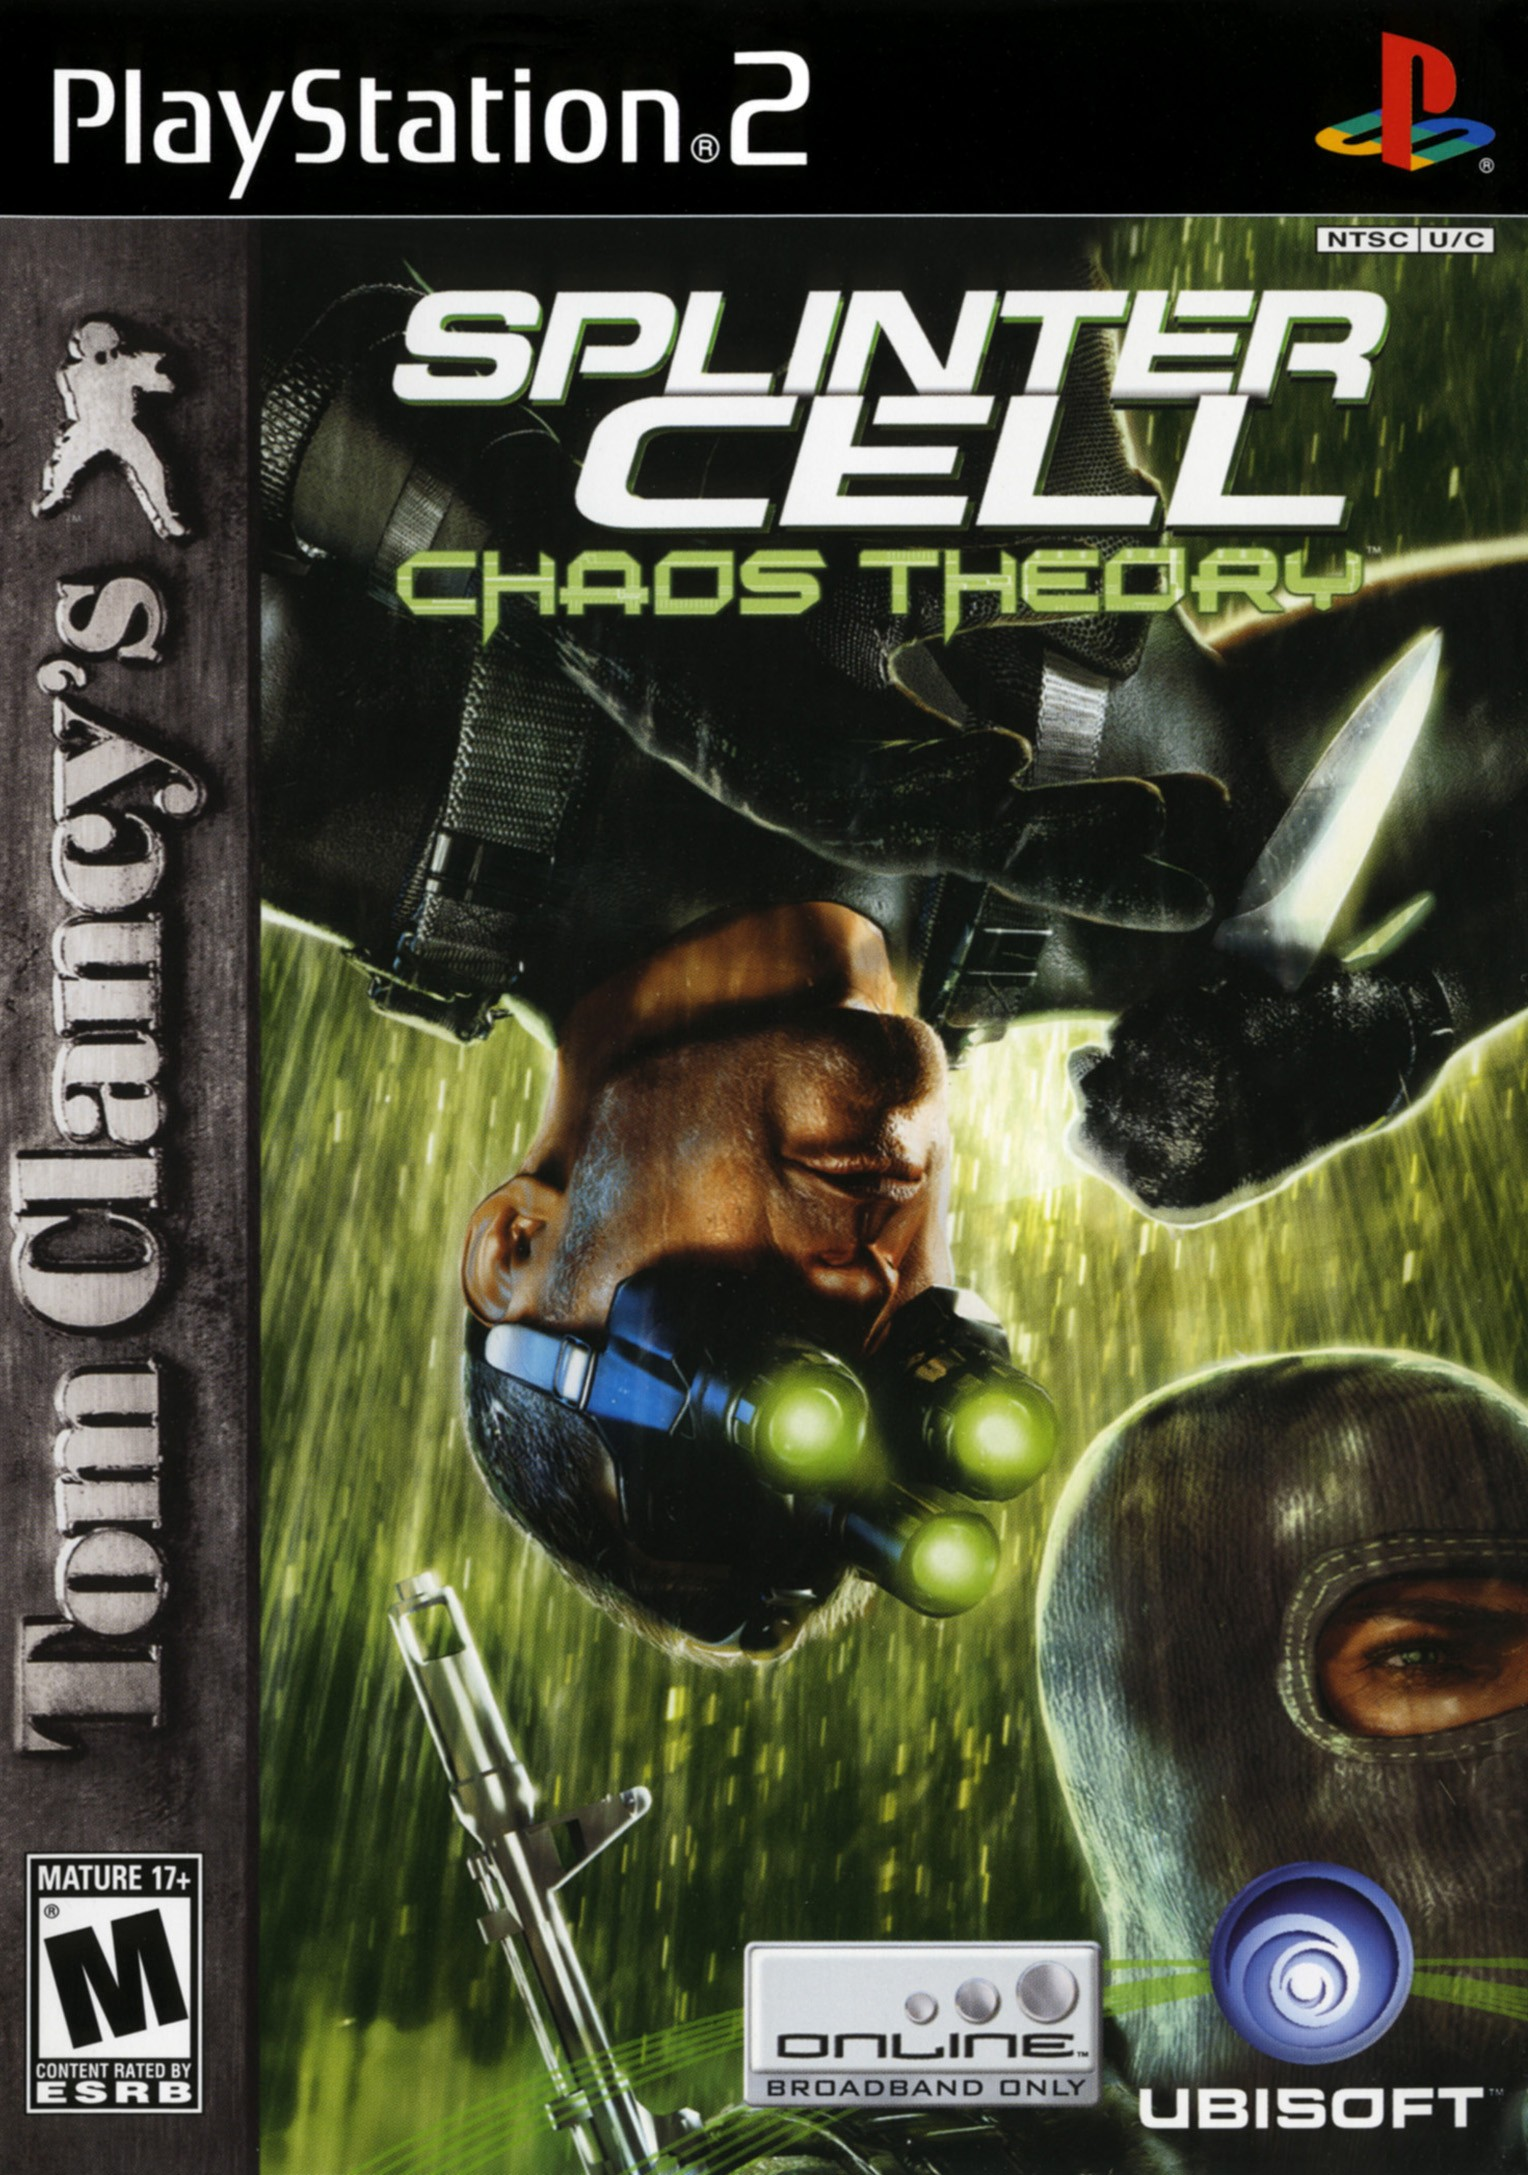 Tom Clancy's Splinter Cell Chaos Theory/PS2